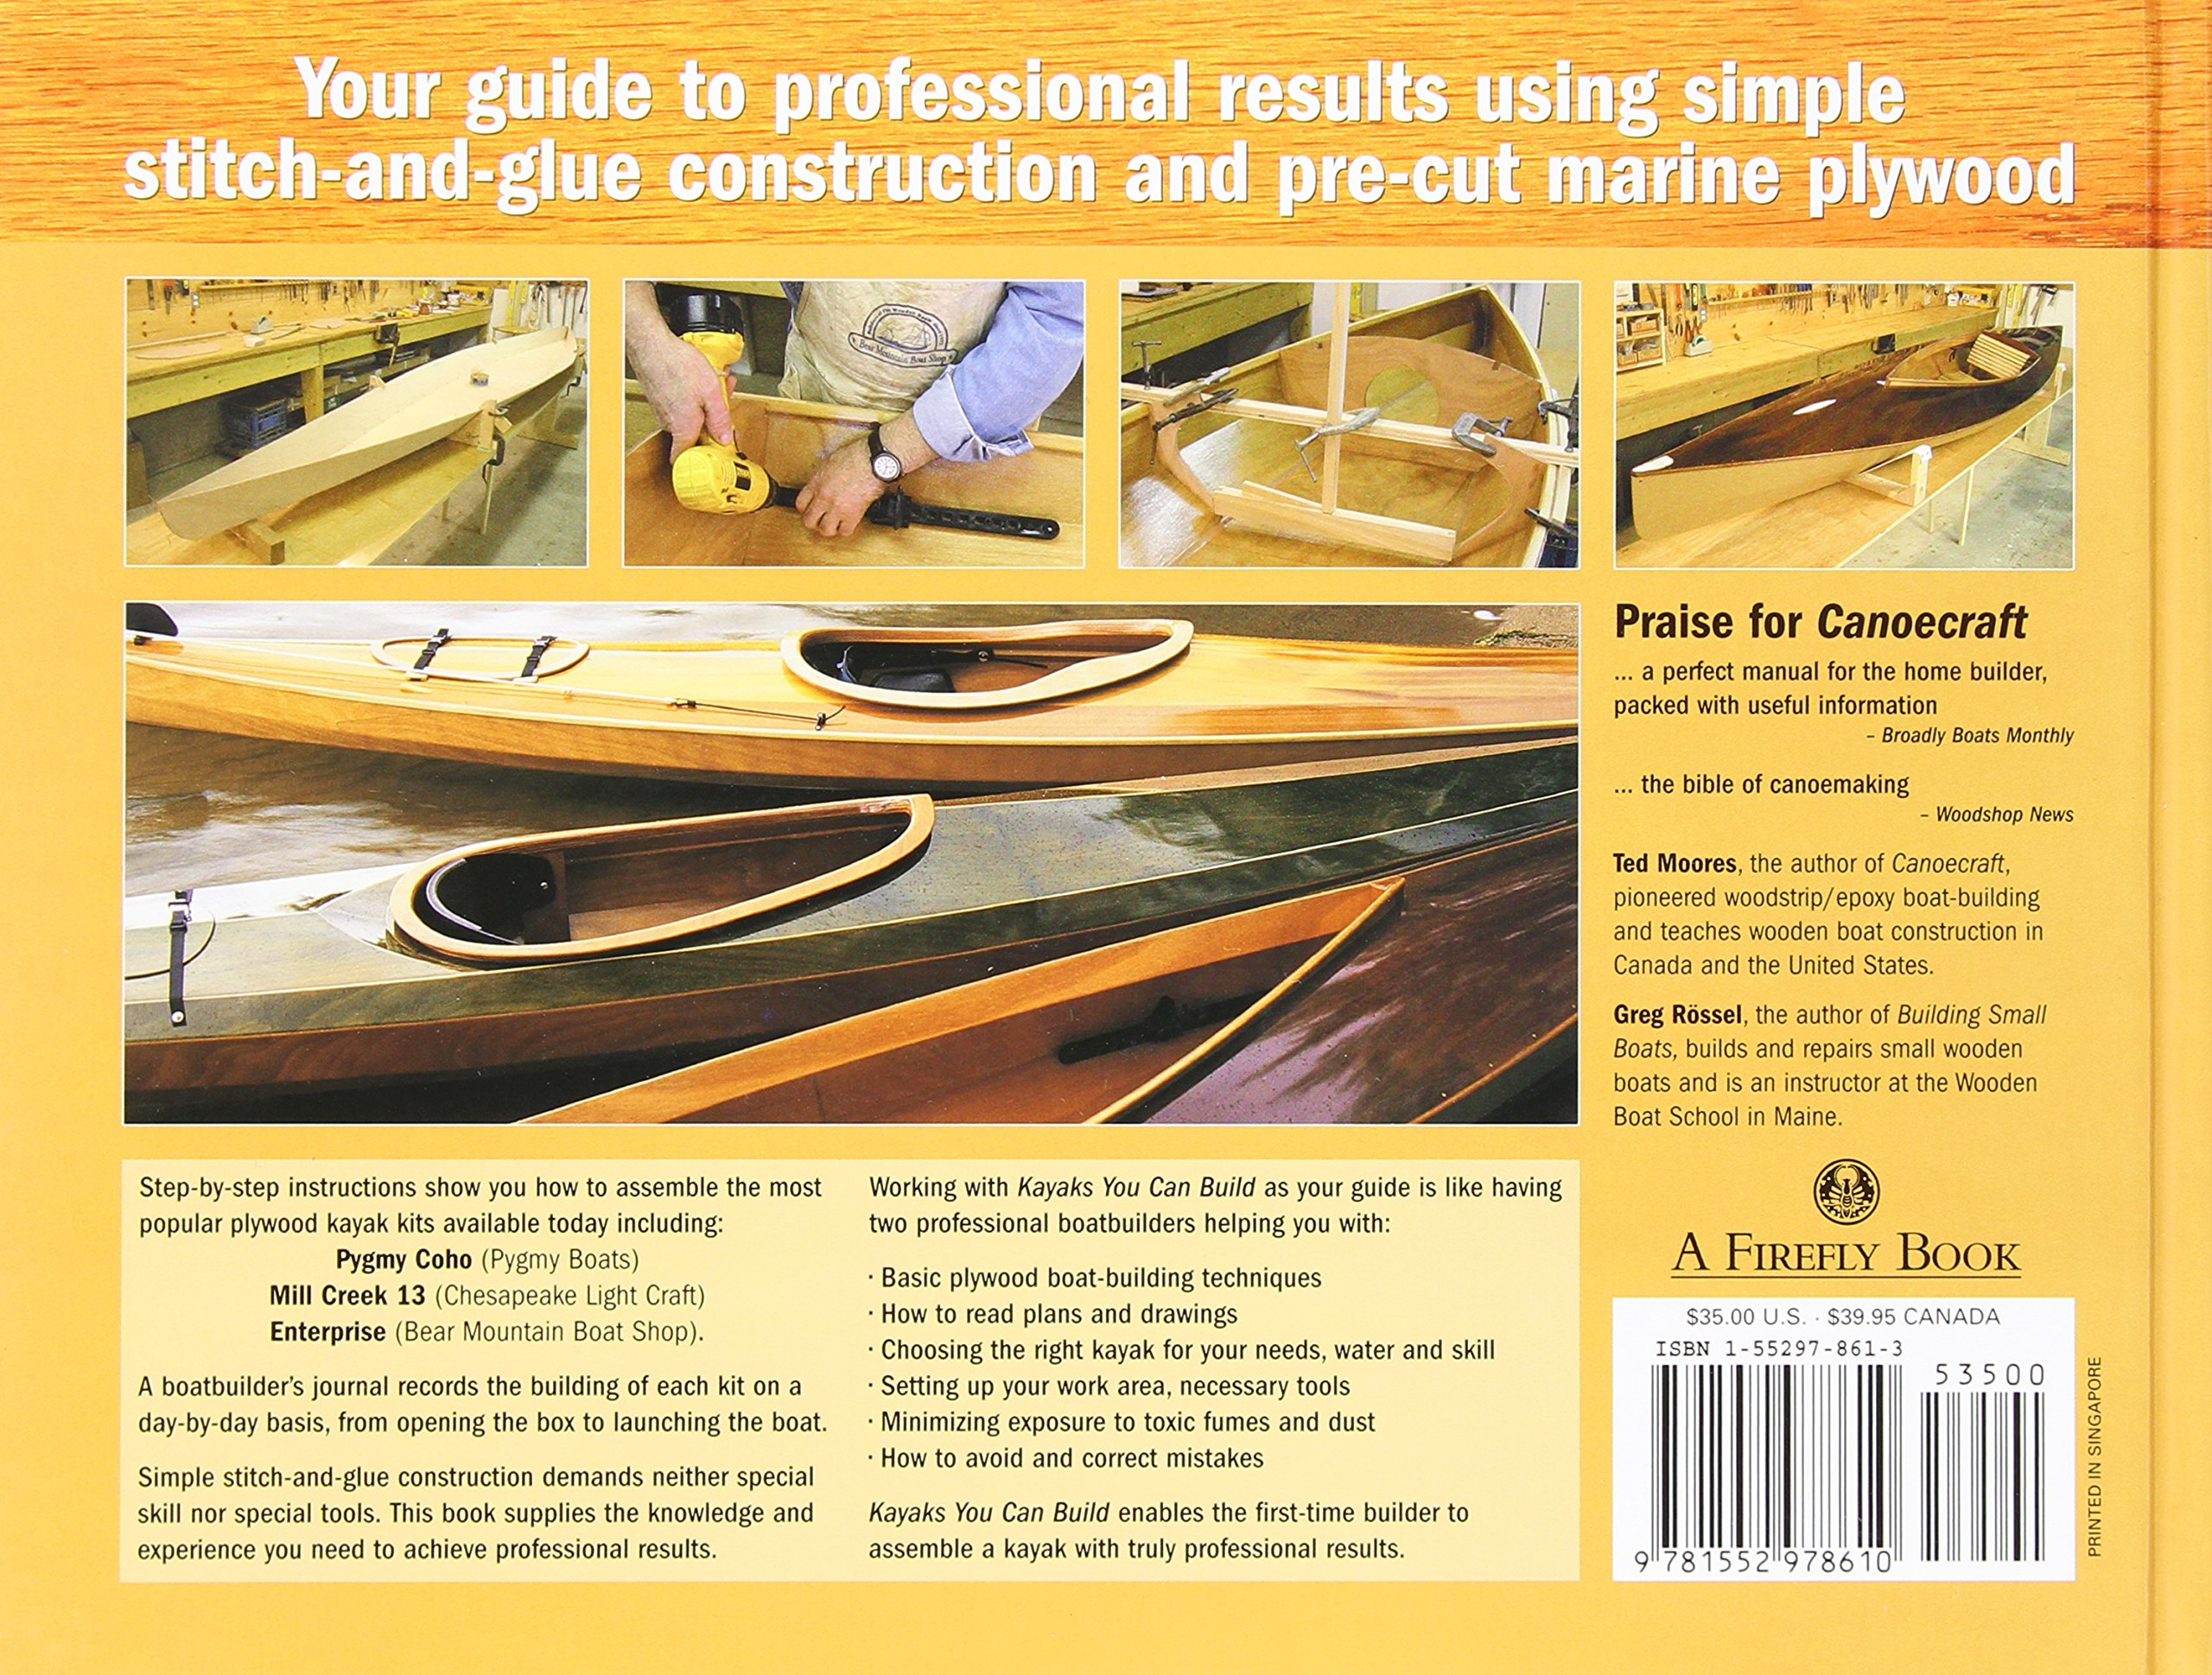 Kayaks you can build an illustrated guide to plywood construction kayaks you can build an illustrated guide to plywood construction ted moores greg rossel 9781552978610 amazon books fandeluxe Image collections